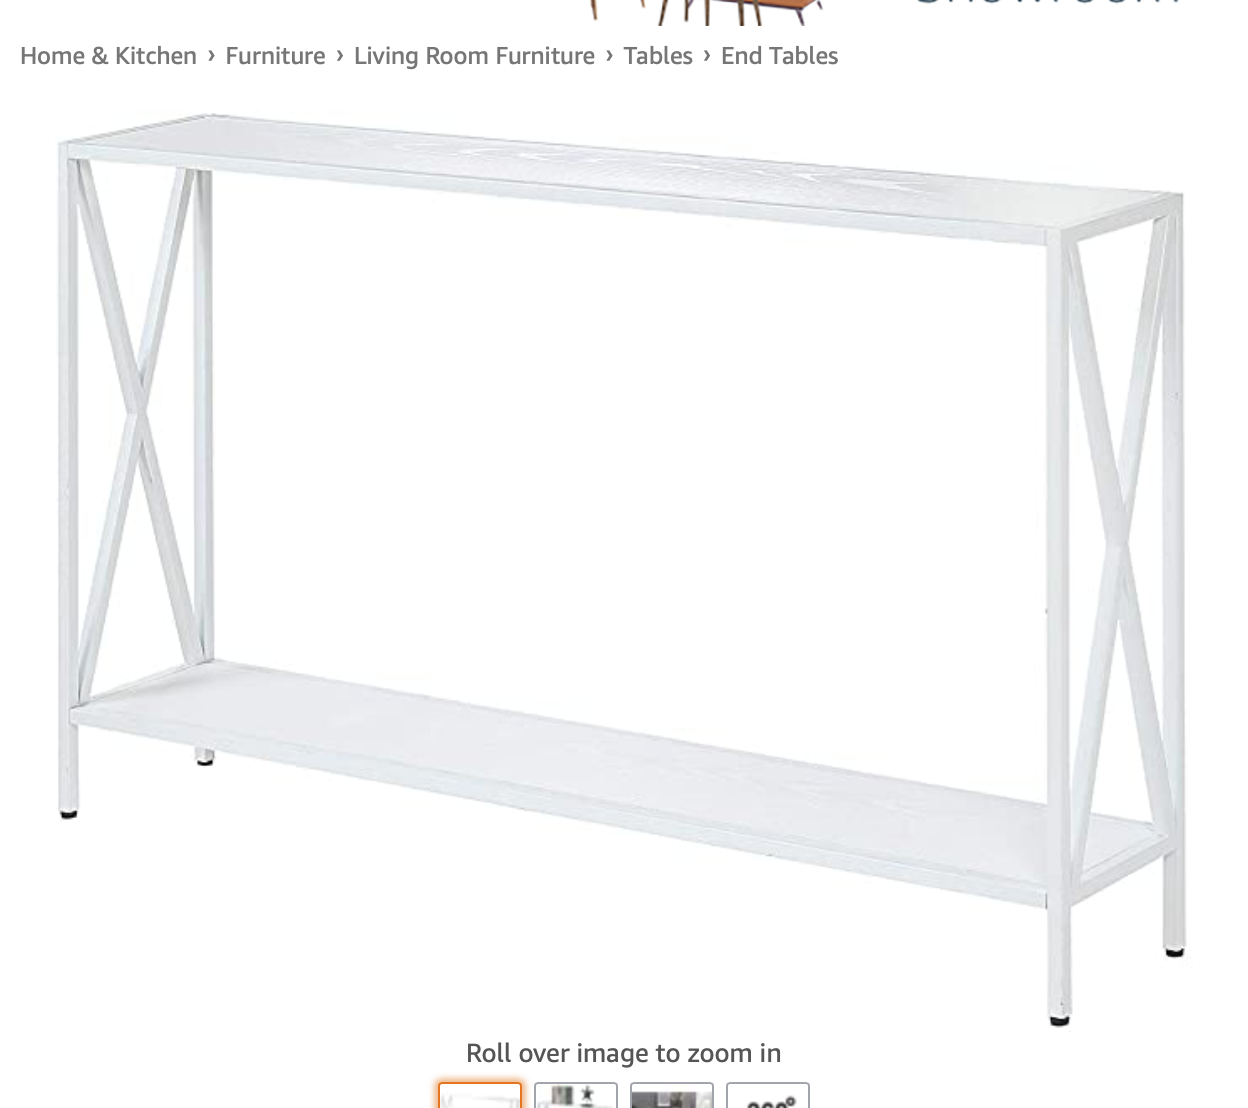 Convenience Concepts Tucson Console Table White In 2020 Console Table Convenience Concepts Mobile Home Decorating